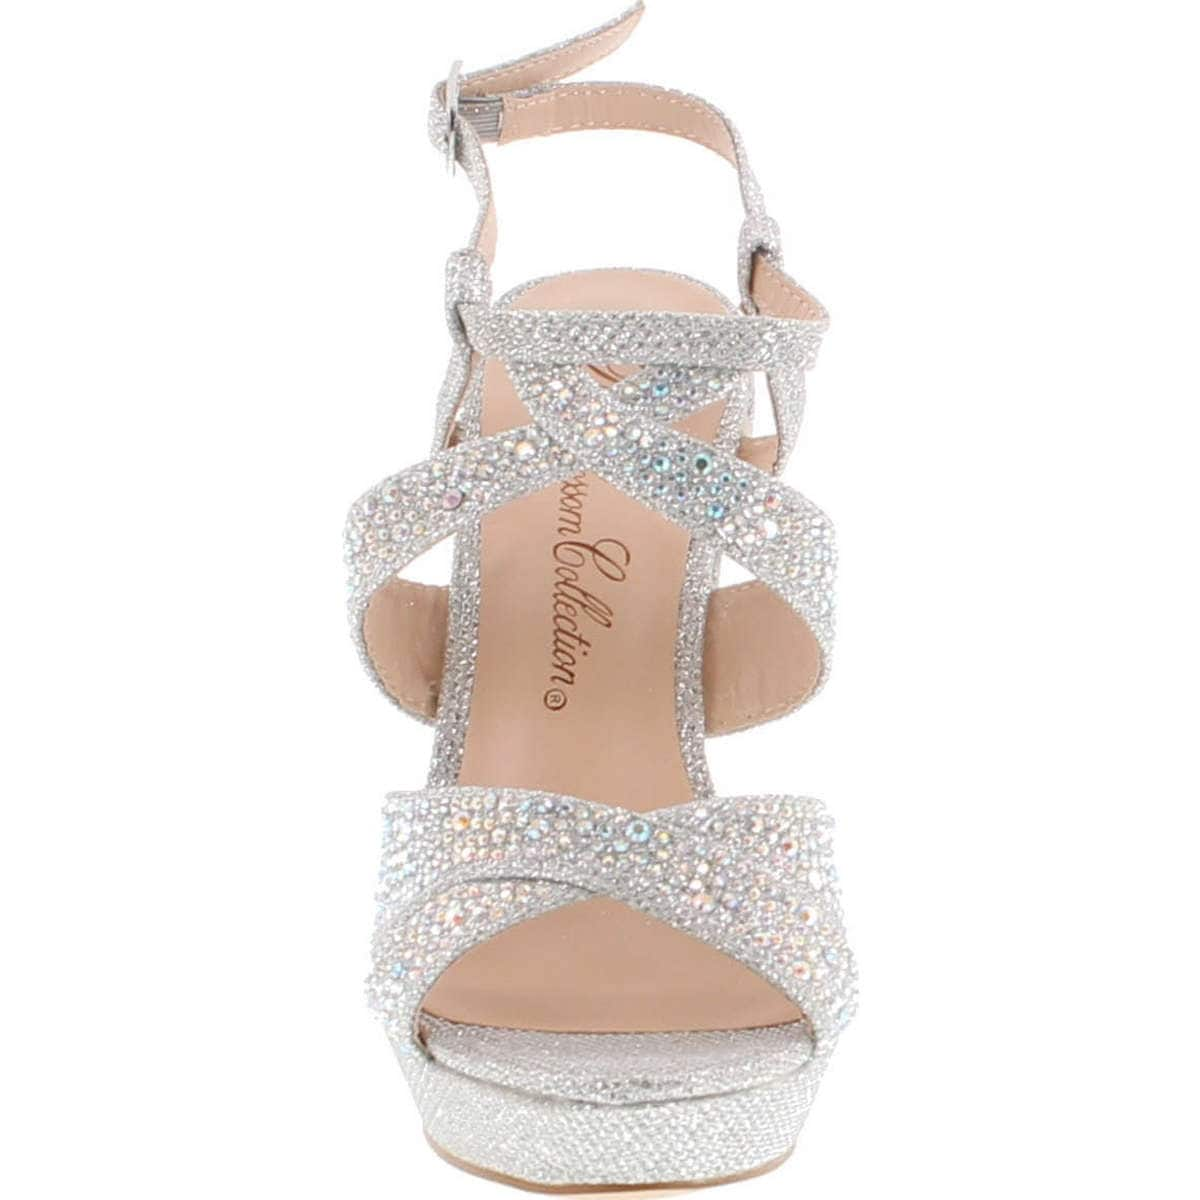 6ebf3fbd4c49 Shop De Blossom Alle-8 High Heel Wedge Sandal With Crystal Embellishment  Style Balle8 - Free Shipping On Orders Over  45 - Overstock - 14756681